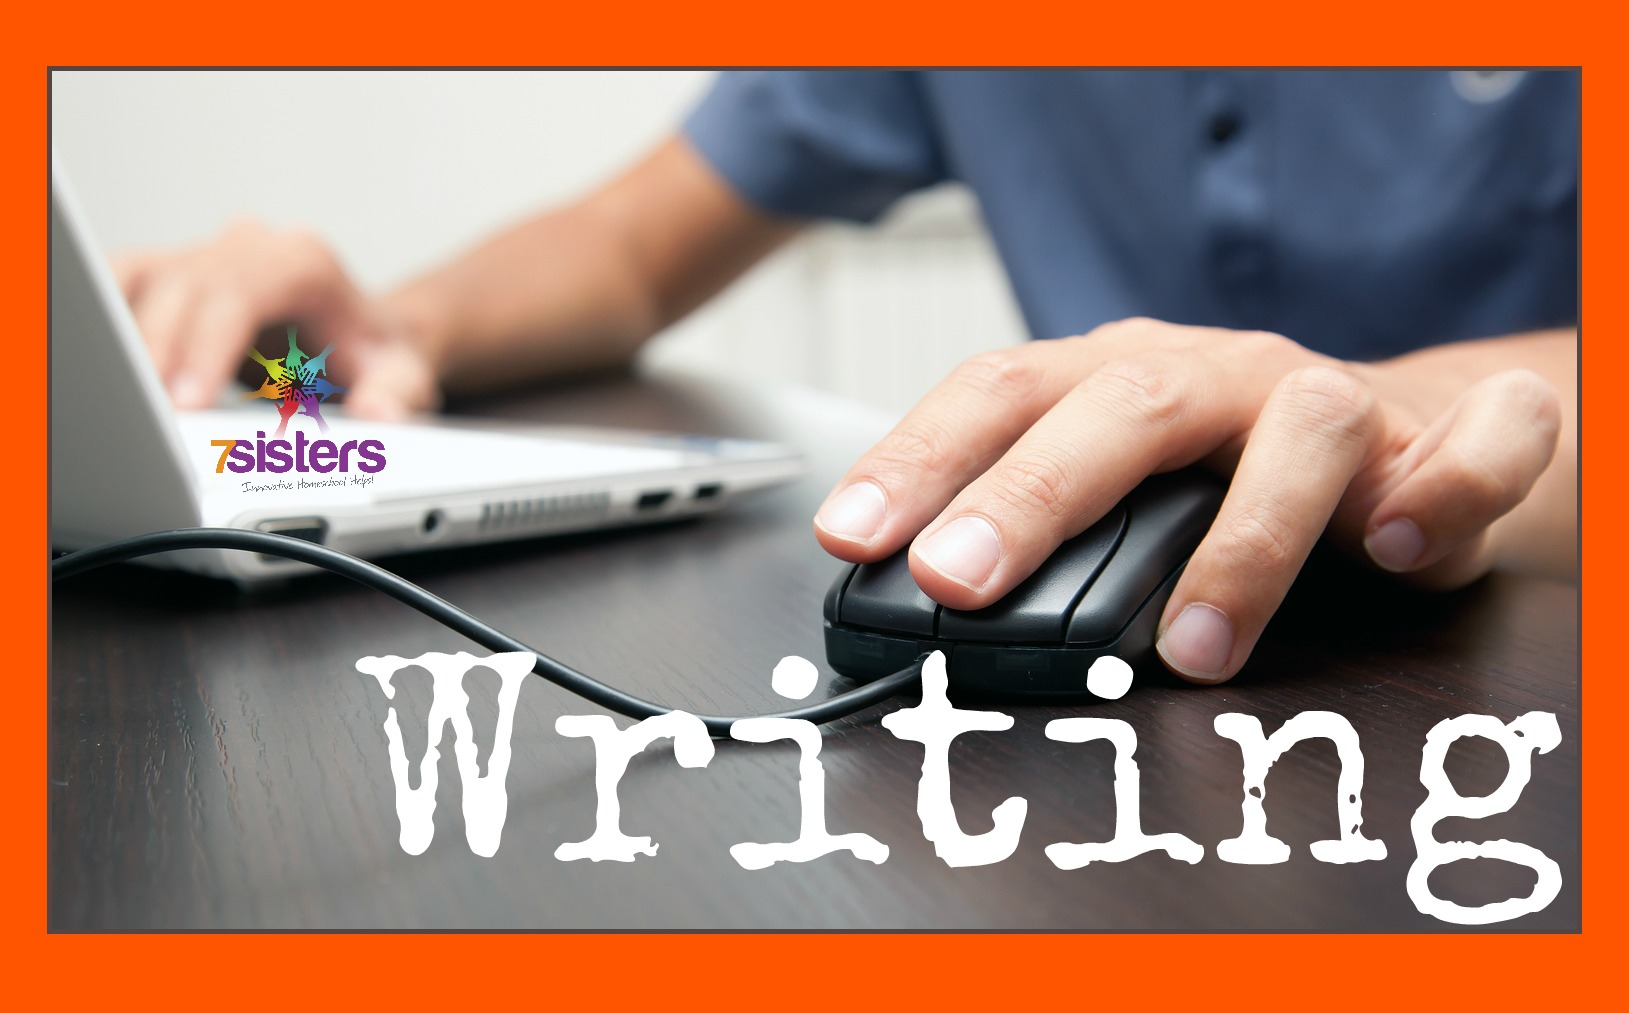 006 What Is The Best Custom Essay Writing Service Essays Usa Juno Cheap Online Category Wri Services Companies Review Professional Uk Awesome Writers Australia Full